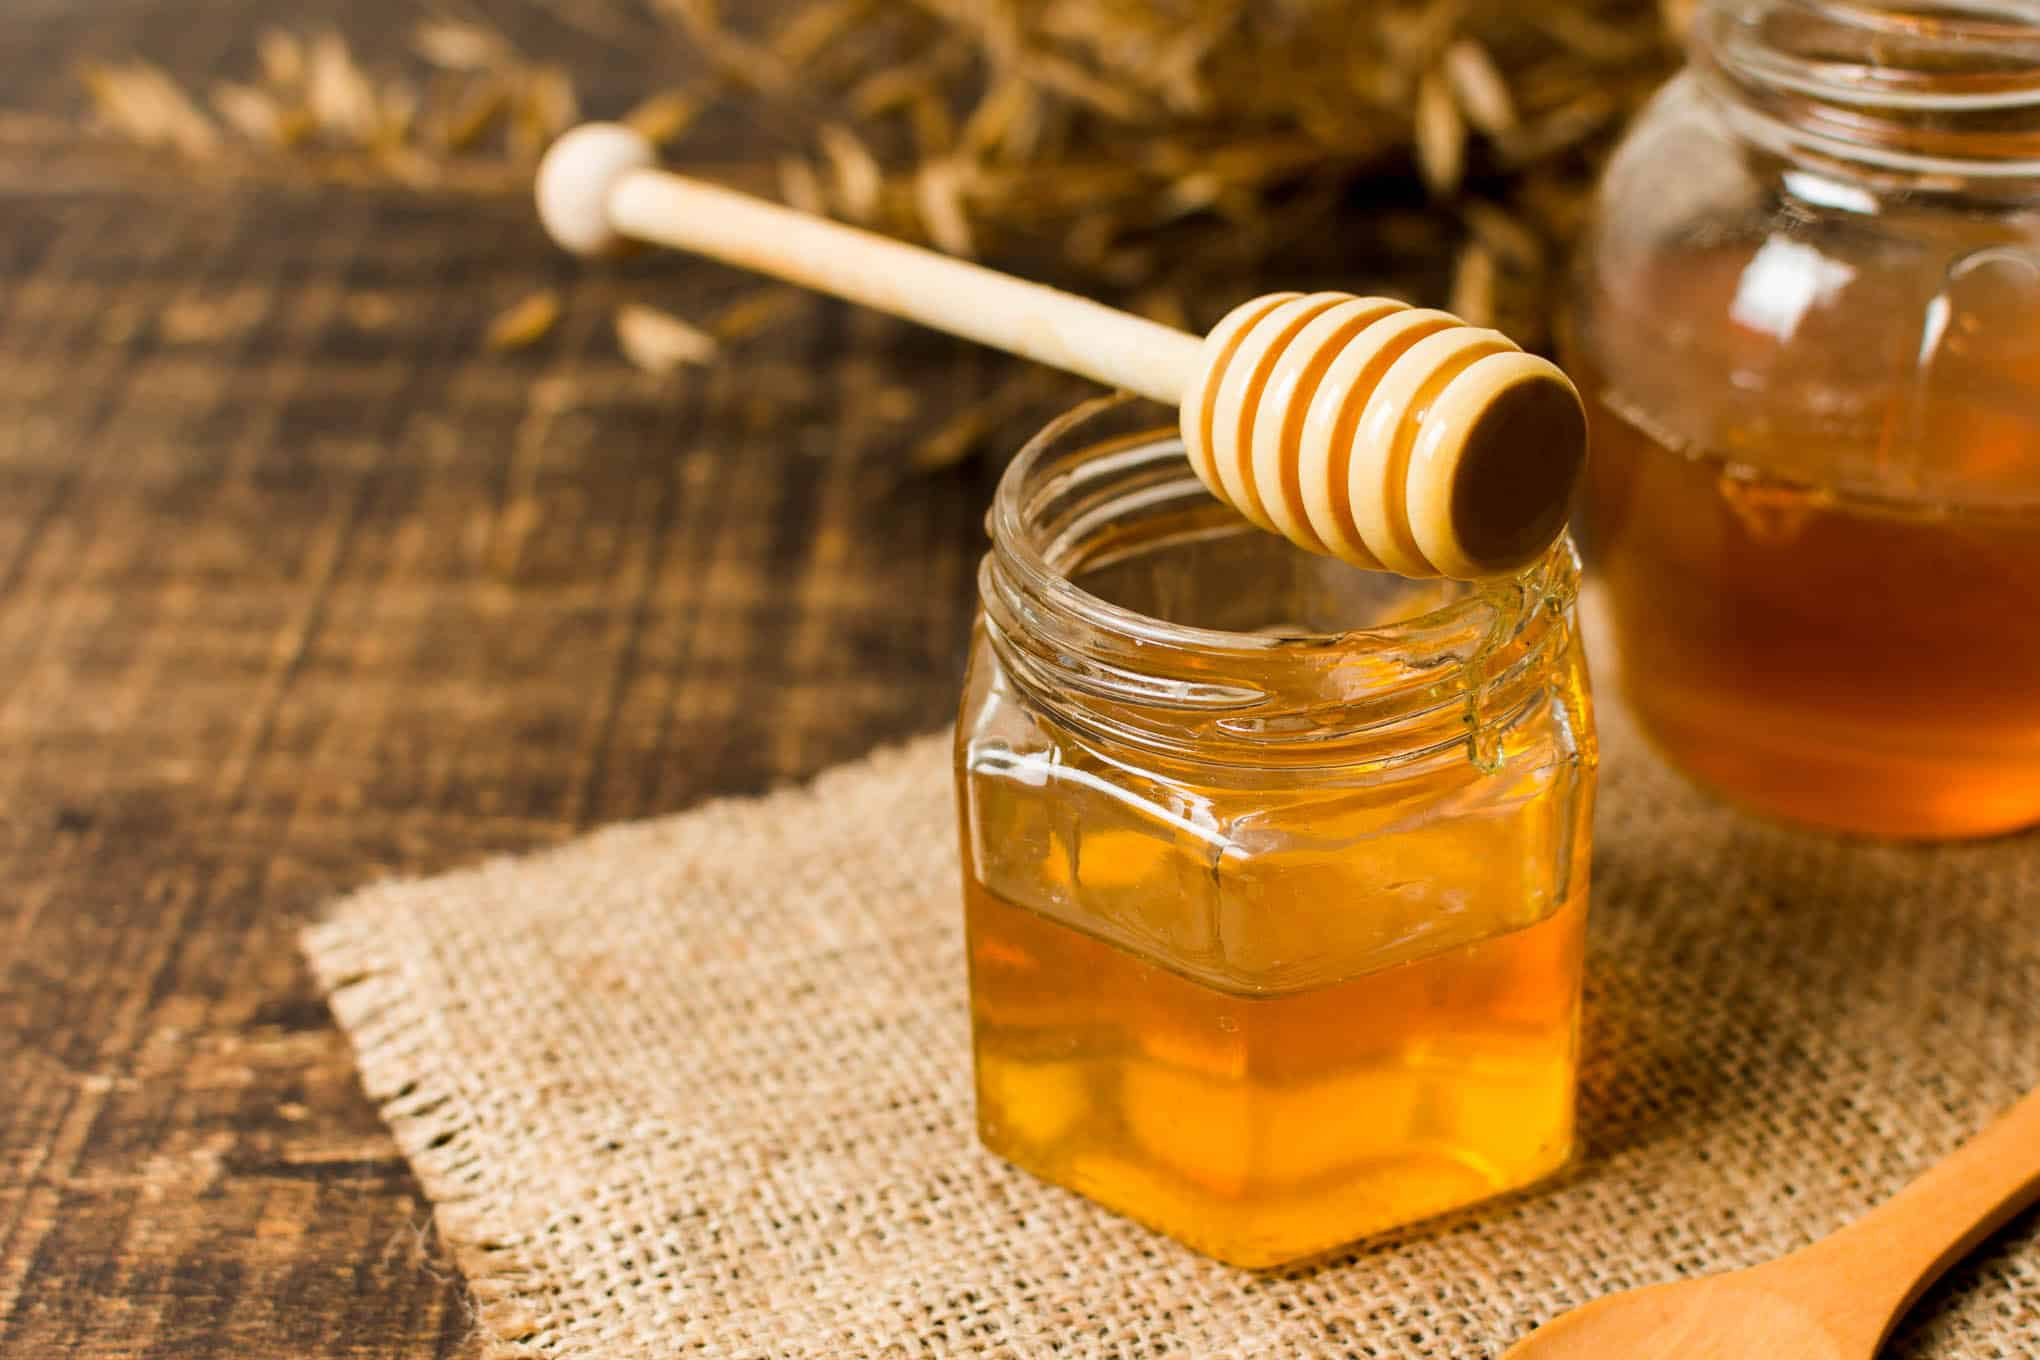 Is Honey Lactose-Free? - Lactose-Free 101